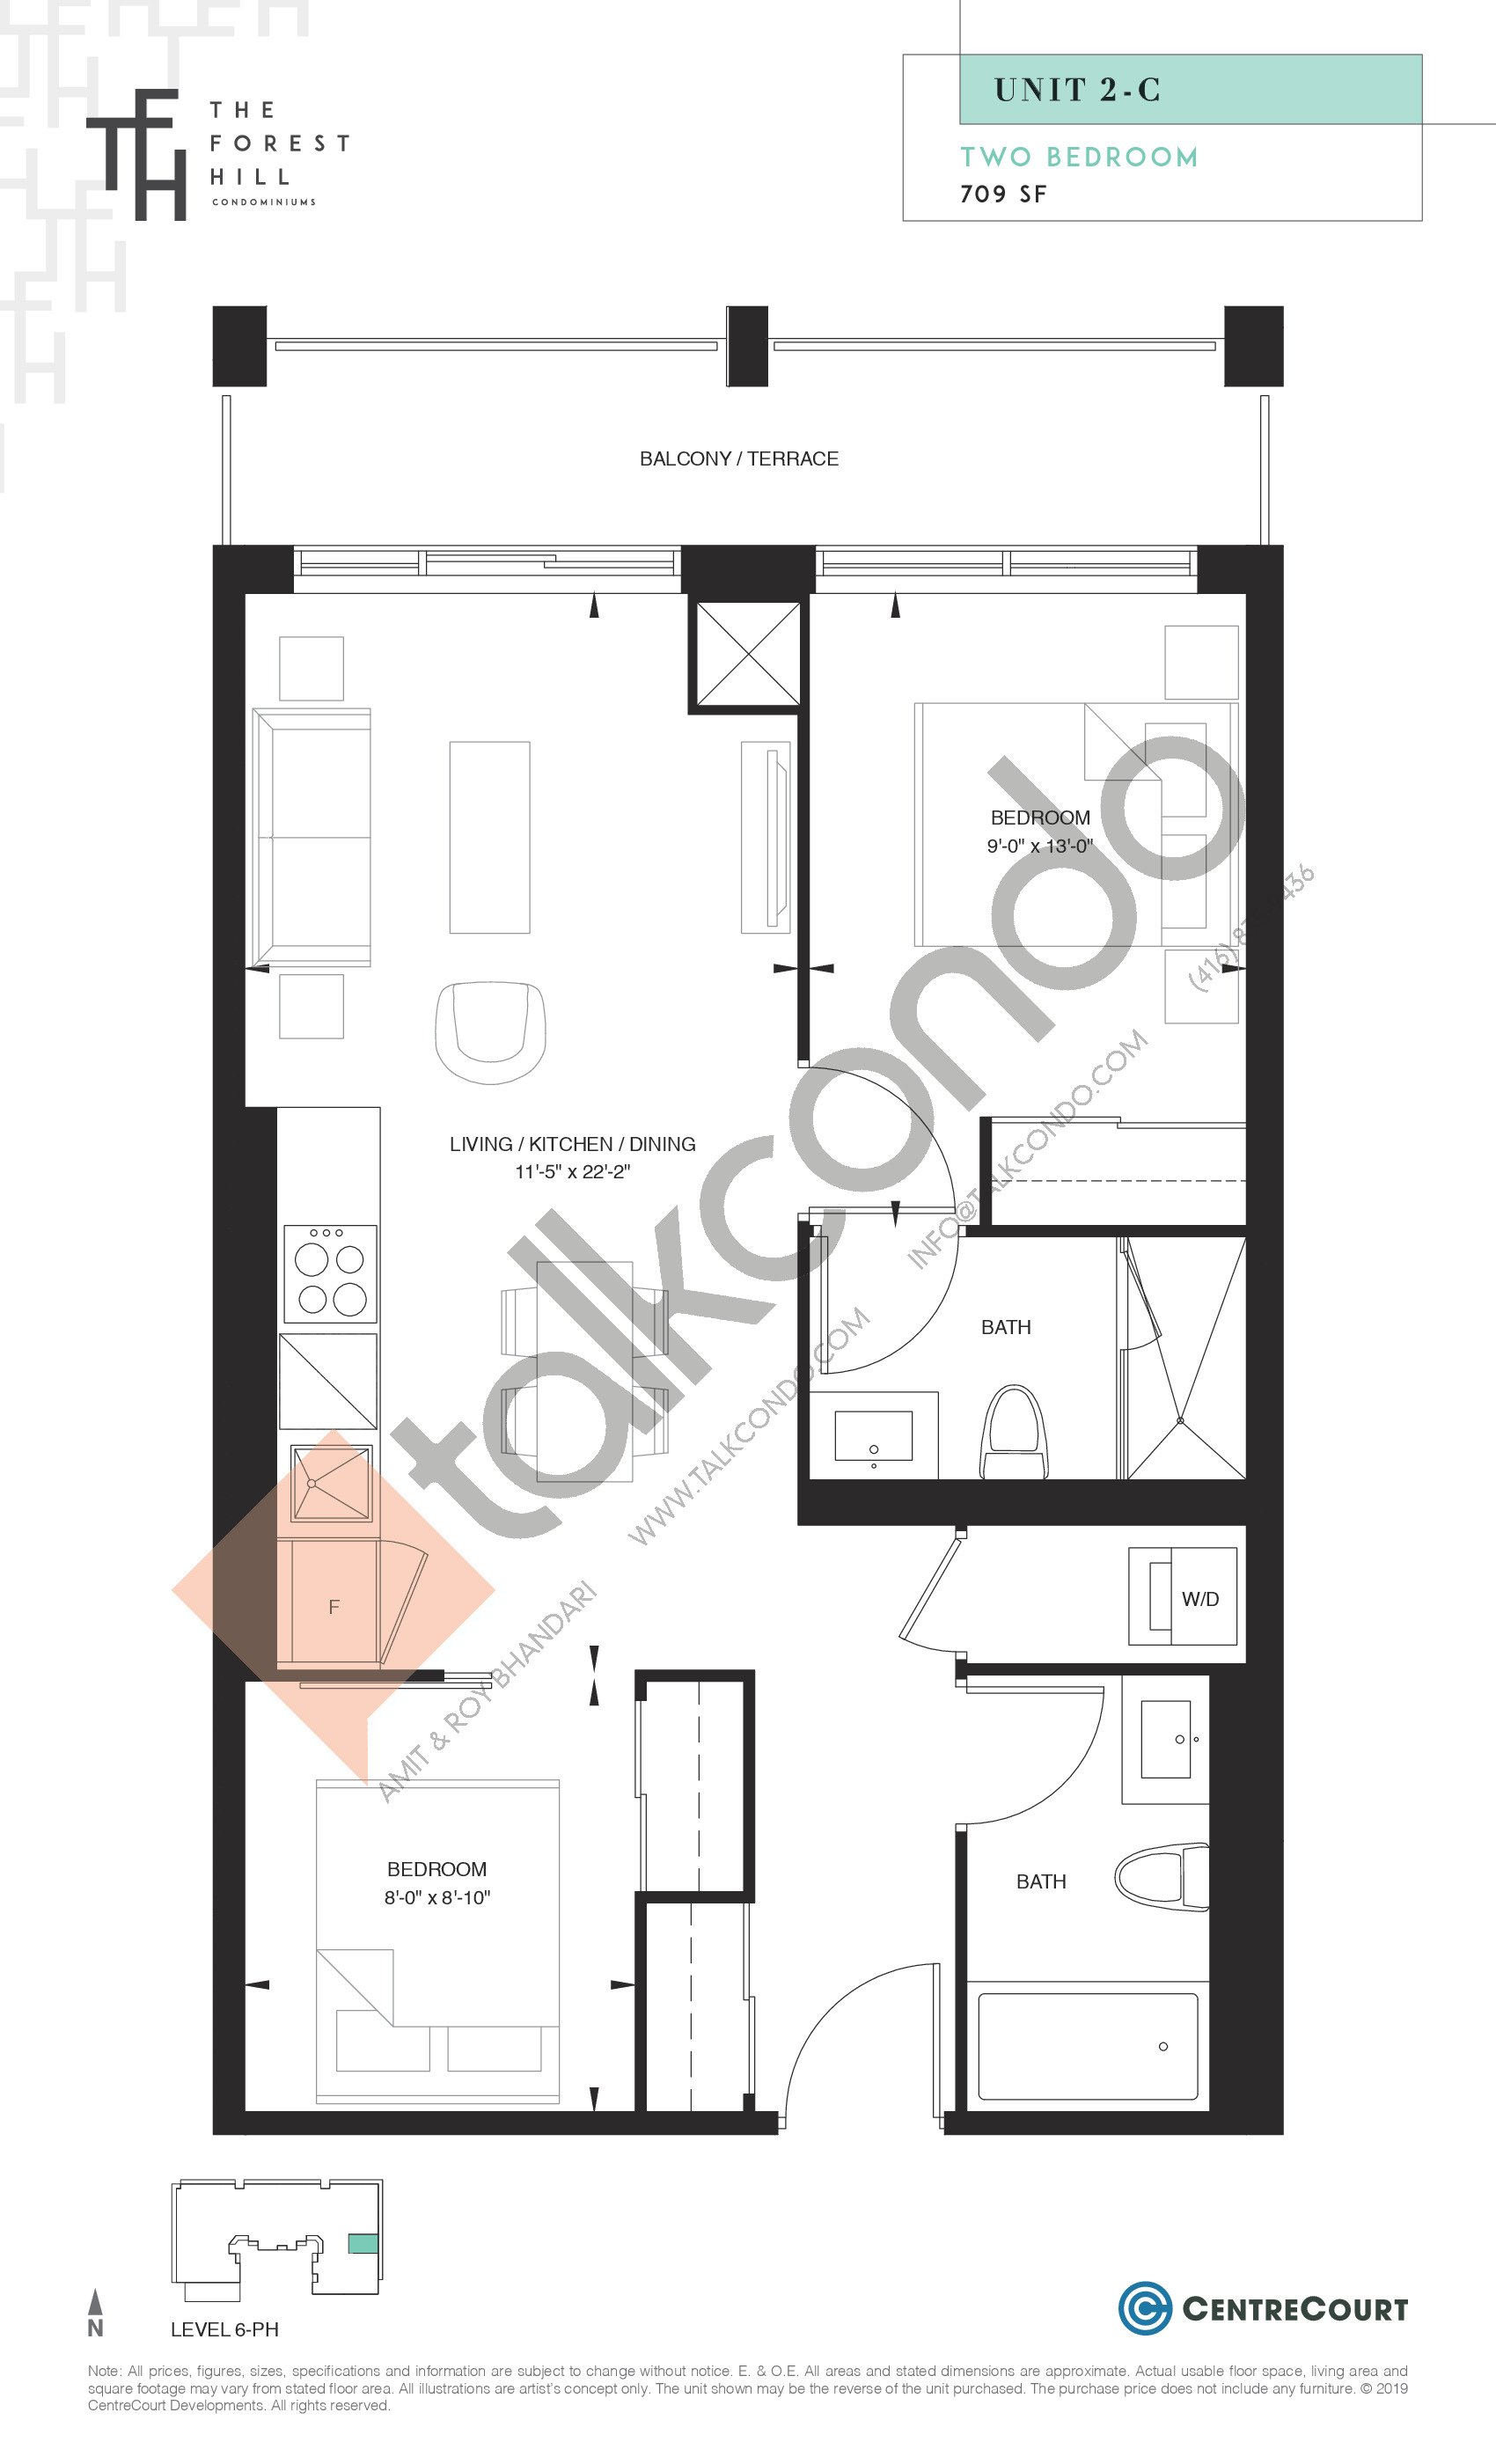 Unit 2-C Floor Plan at The Forest Hill Condos - 709 sq.ft